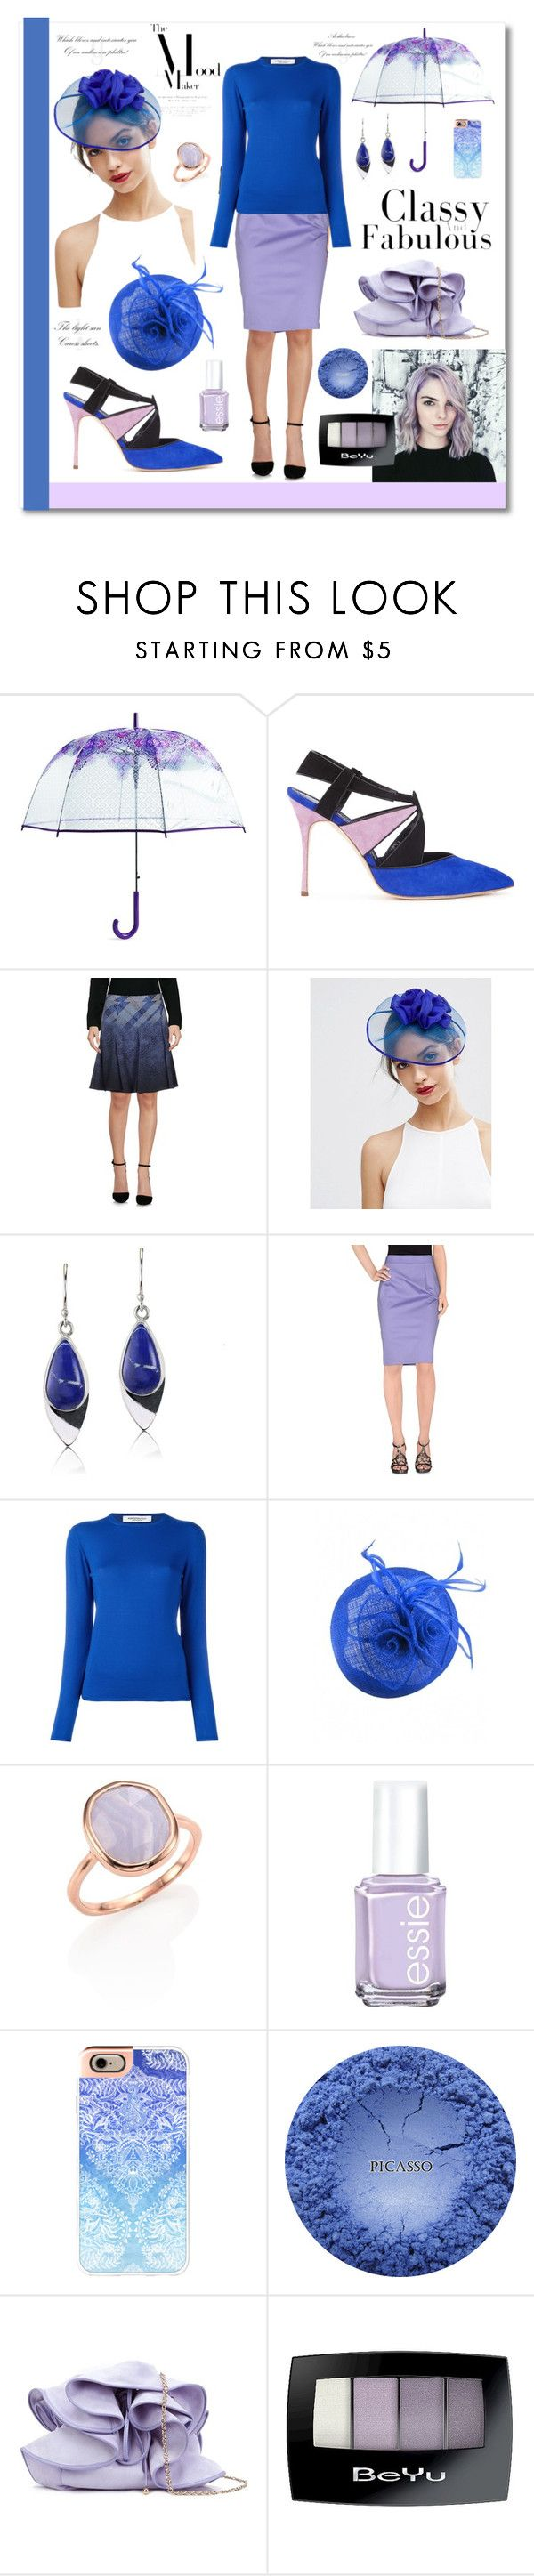 """""""Cobalt Blue and Lilac"""" by magnolialily-prints ❤ liked on Polyvore featuring Vera Bradley, Manolo Blahnik, Blue Les Copains, ASOS, Lazuli, Les Copains, Edamame, Monica Vinader, Essie and Casetify"""